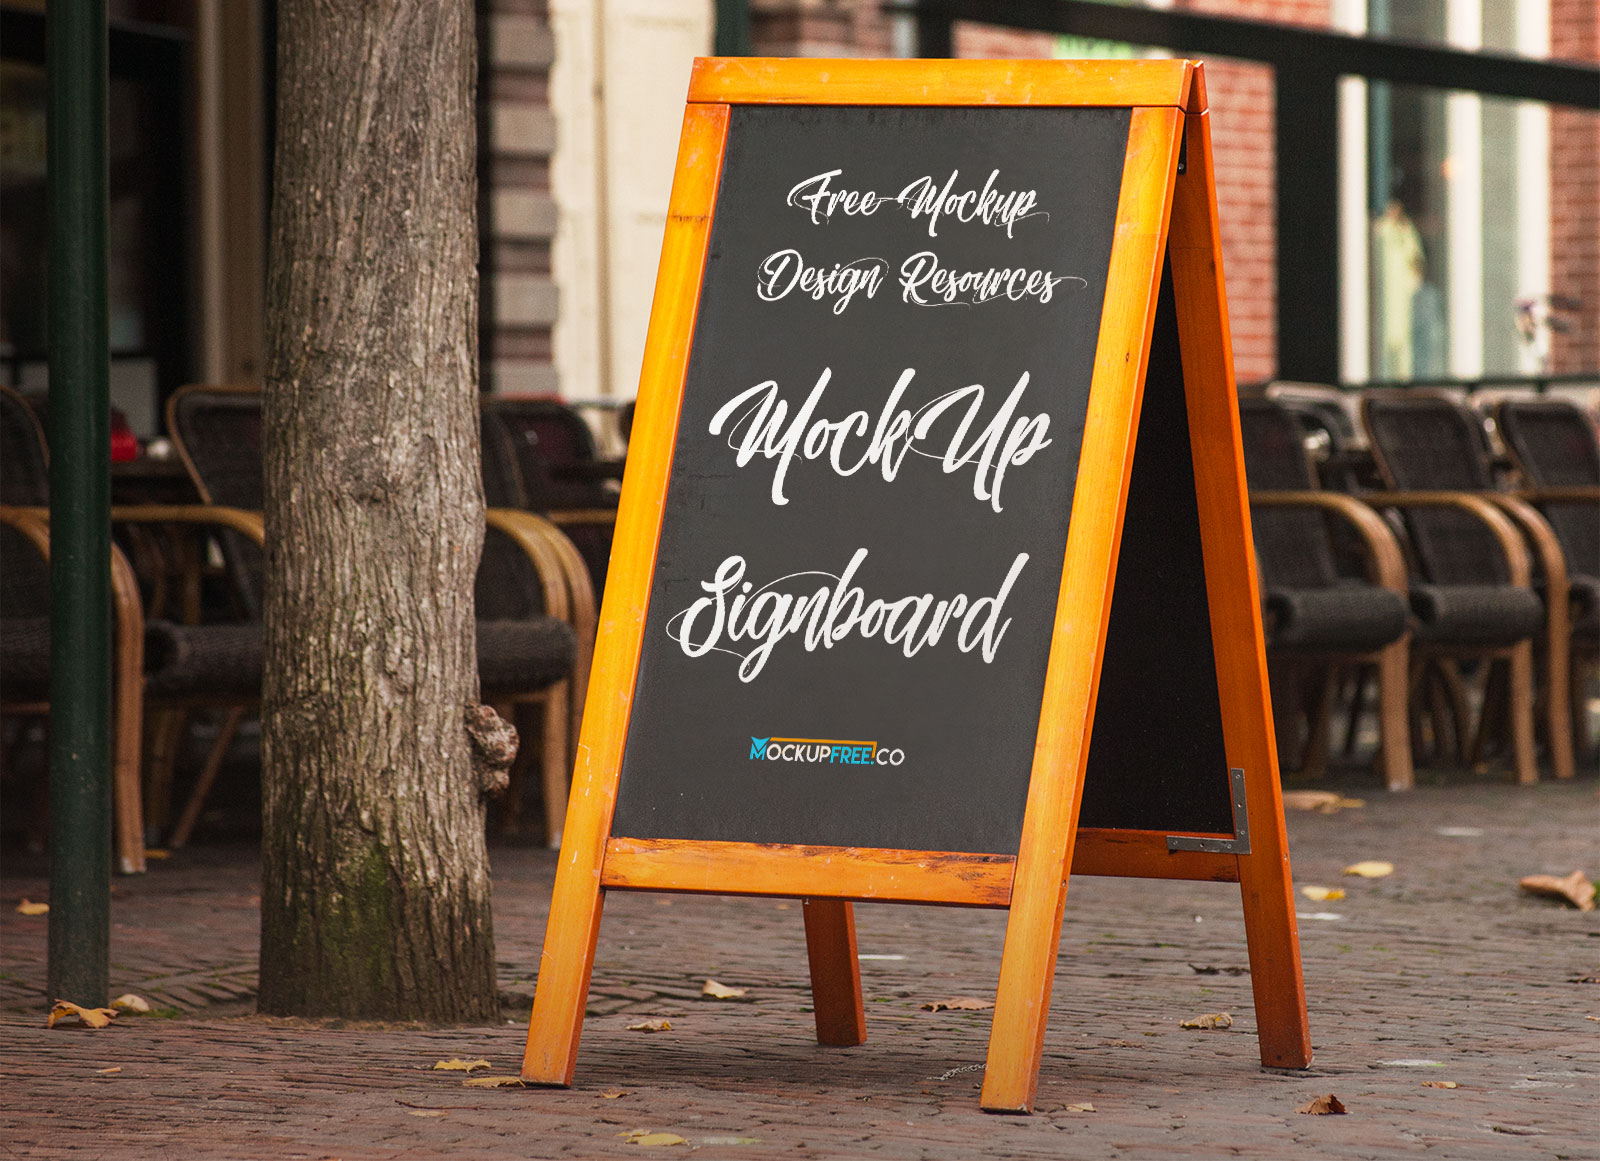 Mockup Iphone And Ipad Free A-stand Wooden Chalkboard Mockup Psd - Good Mockups